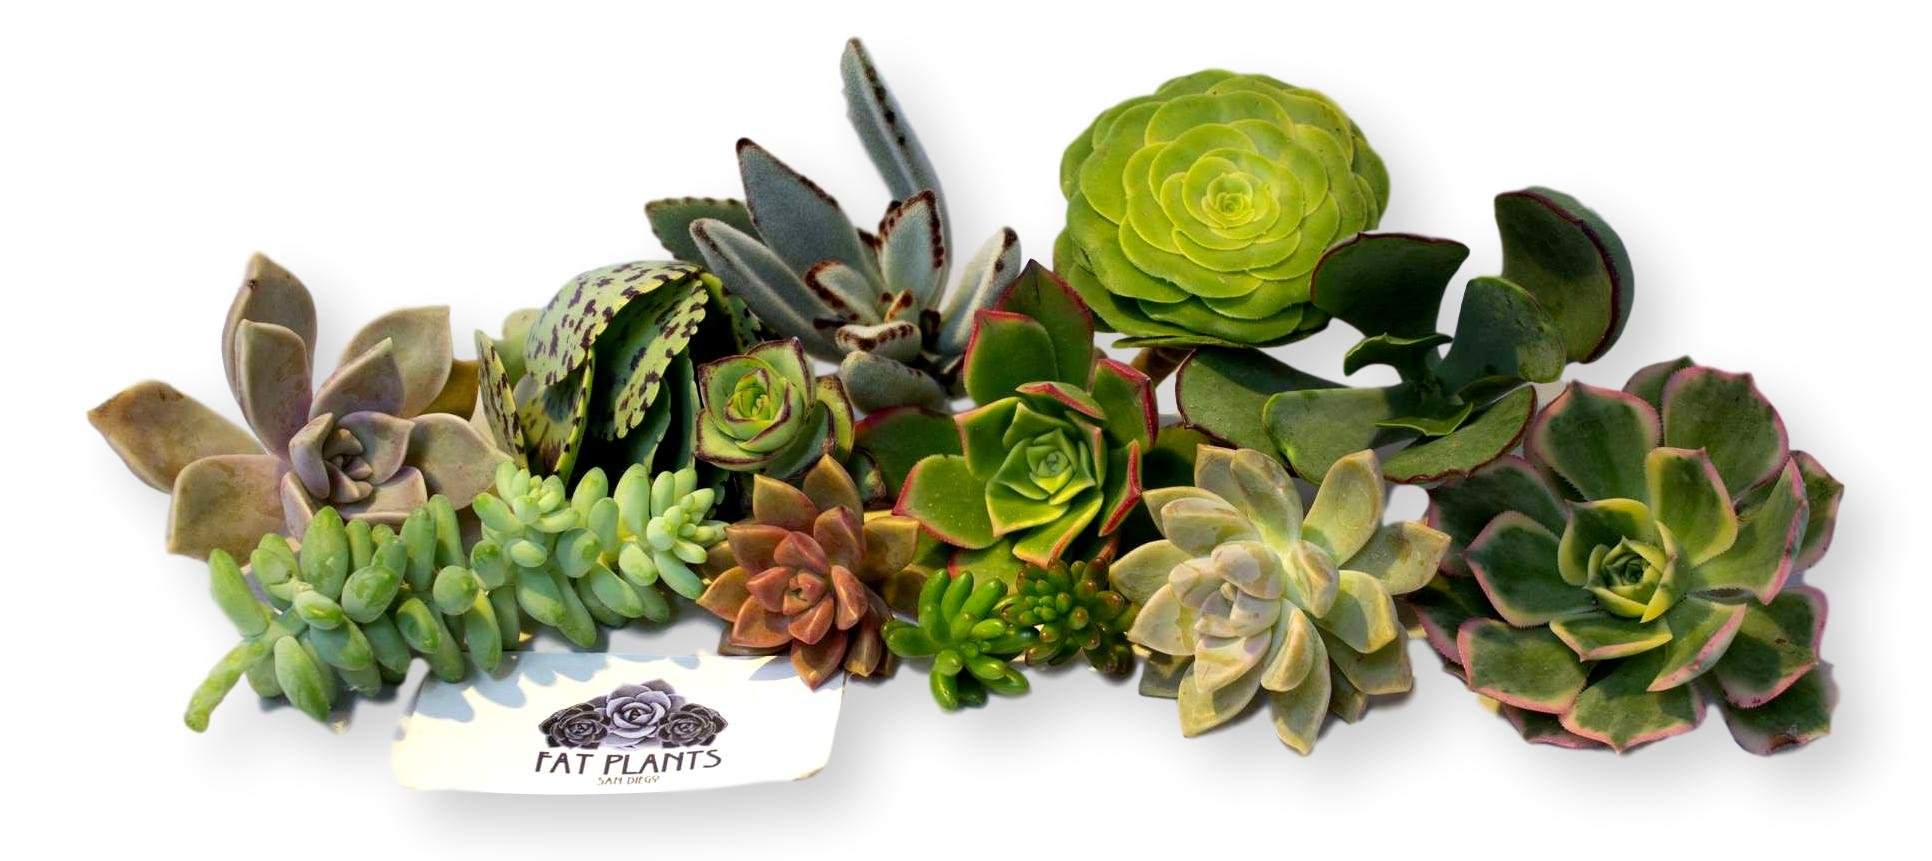 Fat Plants San Diego Ten Gorgeous Succulent Cuttings indoor by Fat Plants San Diego